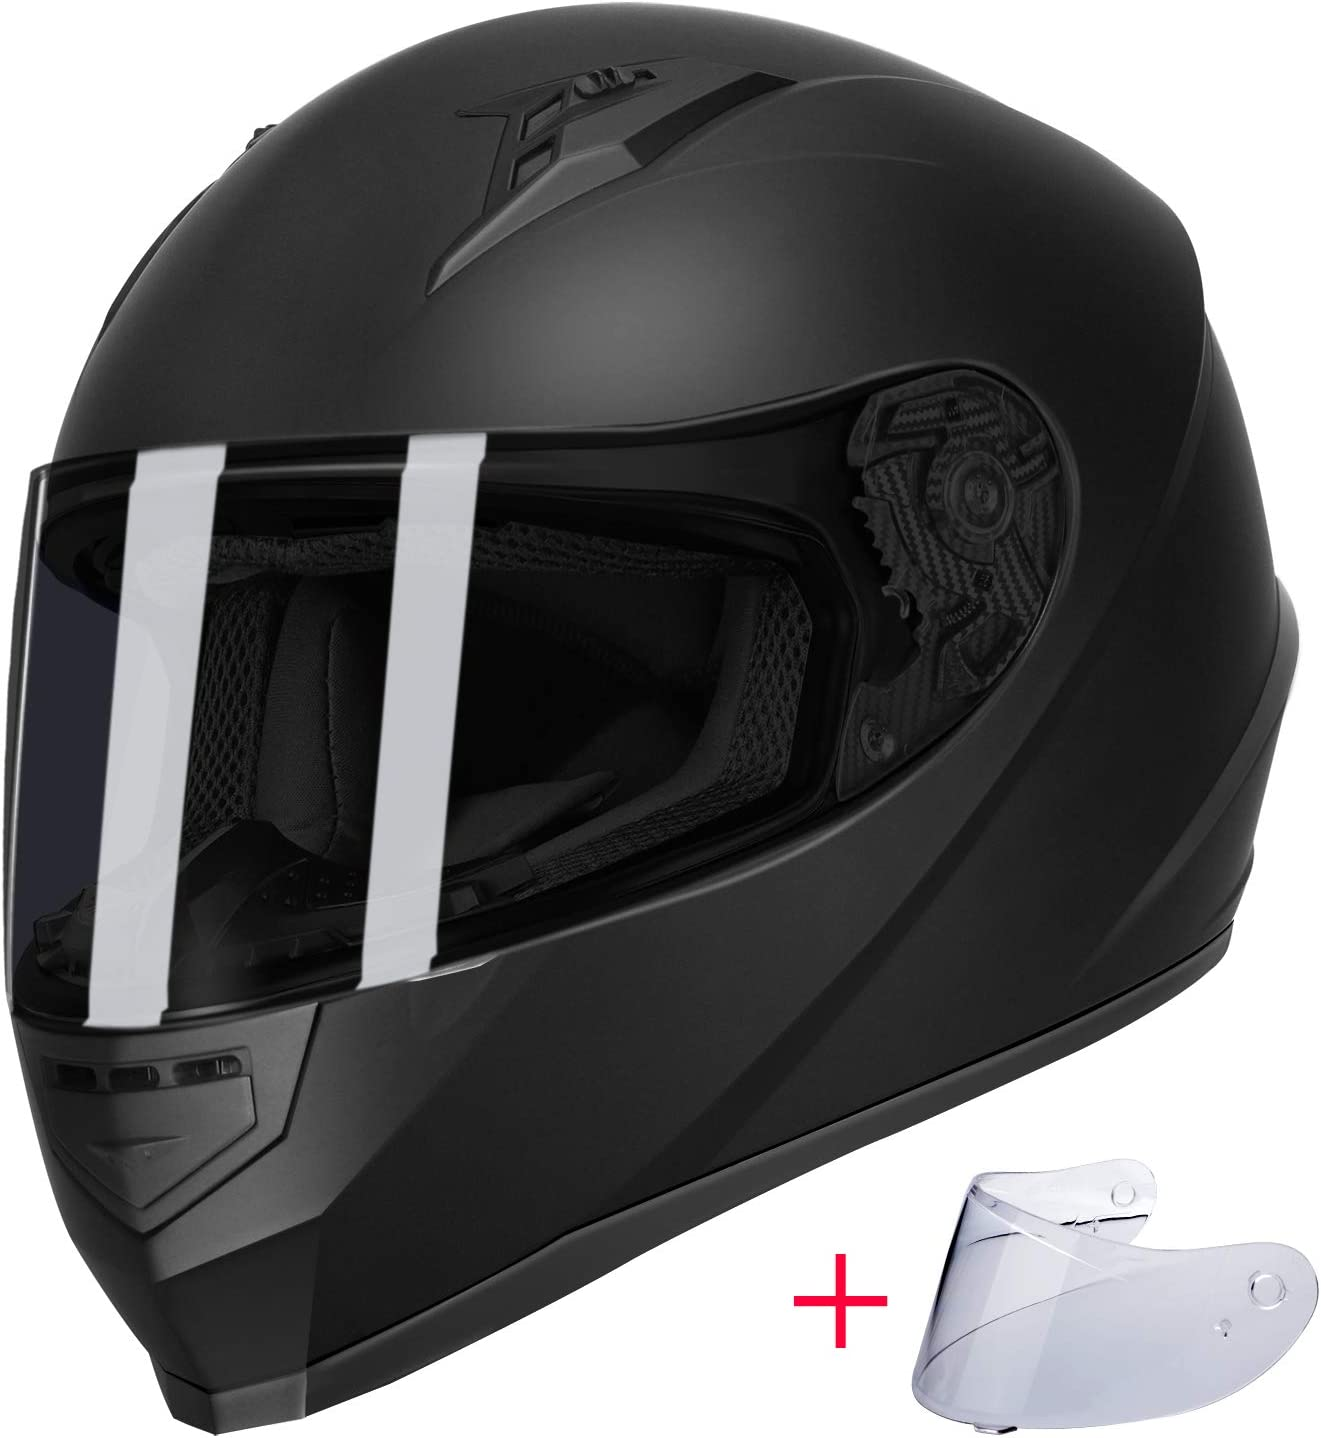 GLX Unisex-Adult GX11 Compact Lightweight Full Face Motorcycle Street Bike Helmet with Extra Tinted Visor DOT Approved (Matte Black, Large)